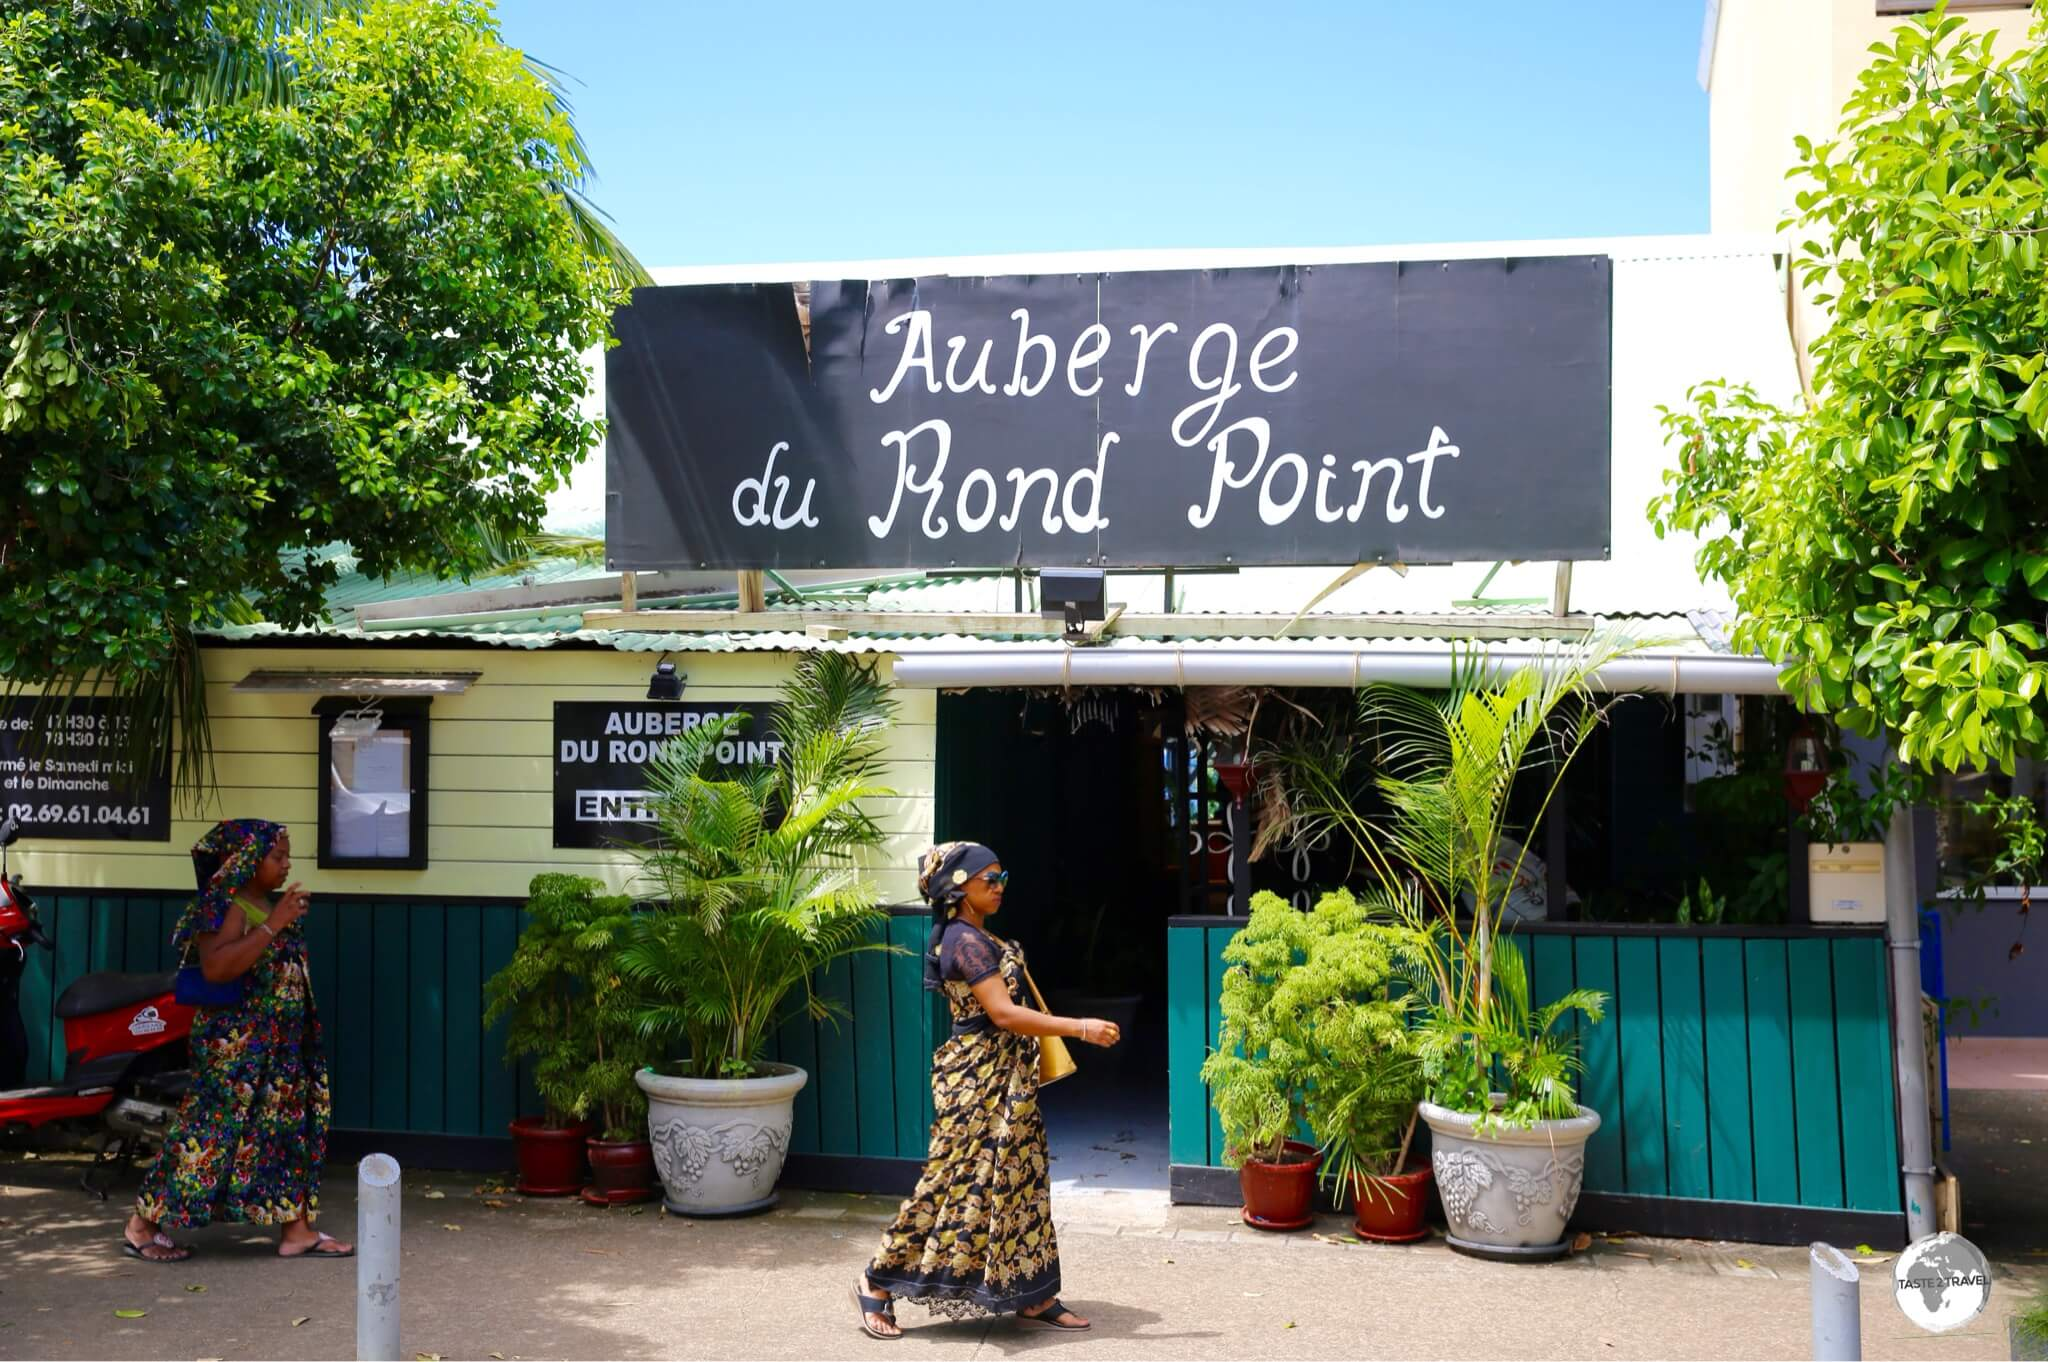 My favourite restaurant in Mamoudzou, the charming Auberge du Rond-Point offers wonderful meals.